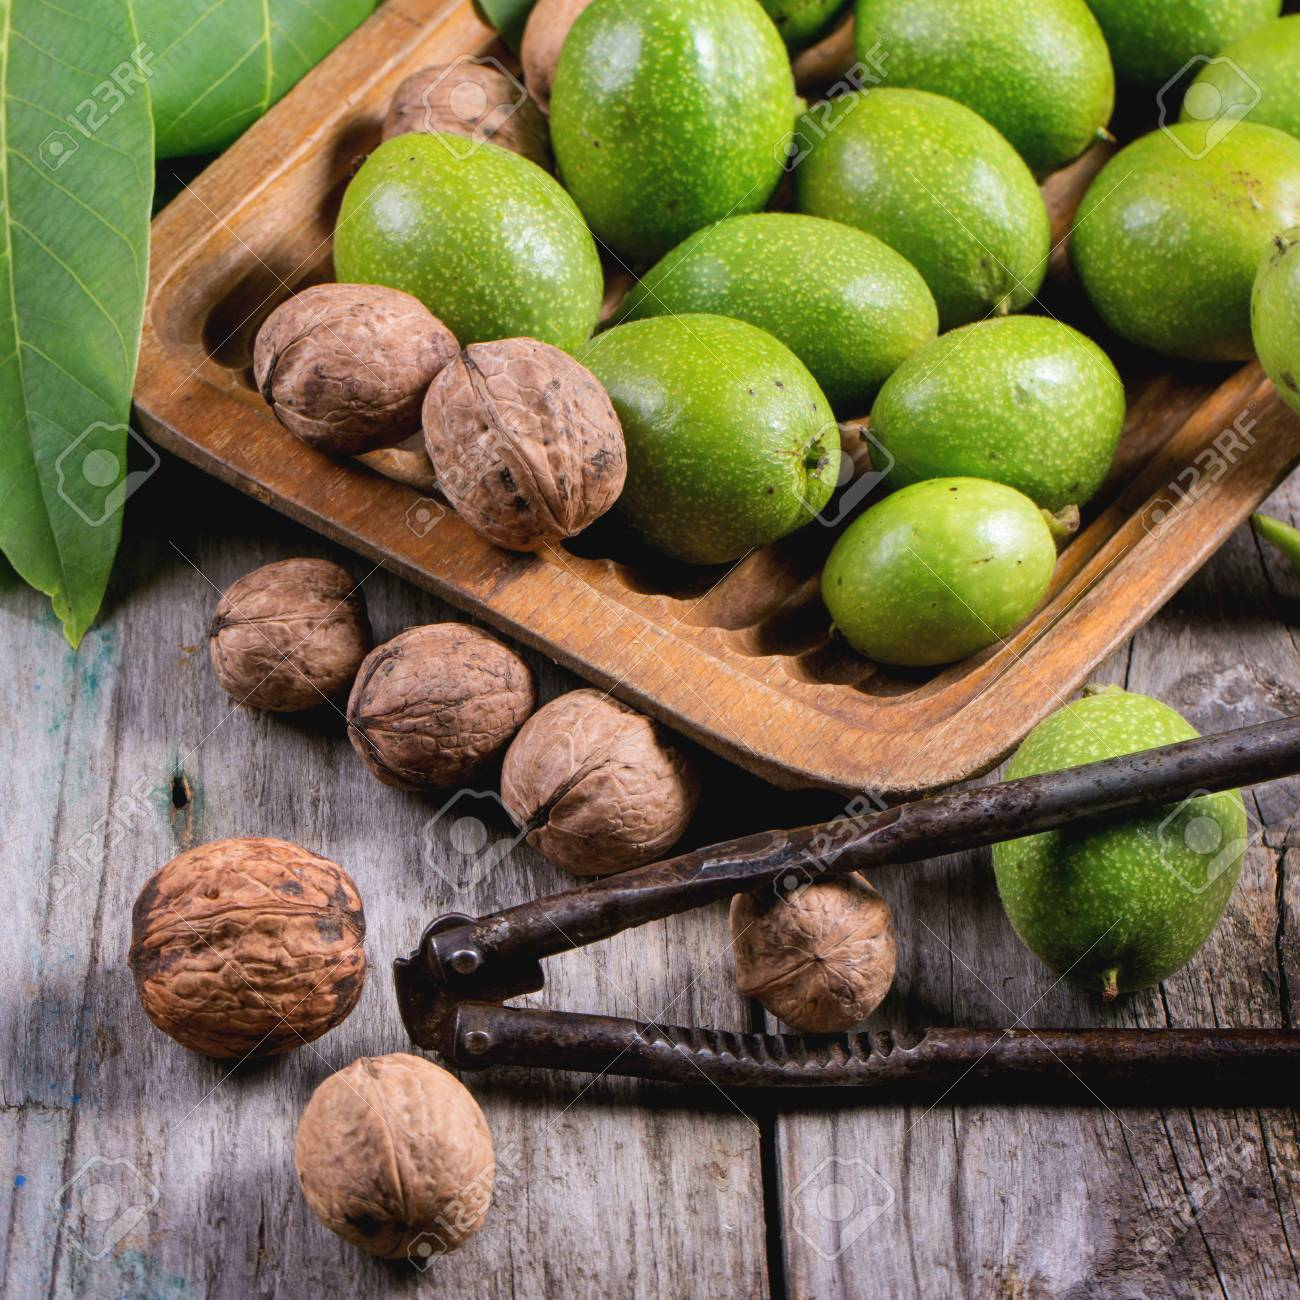 Young green and ripe walnuts in wooden plate and vintage nutcracker over wooden background. Square image with selective focus - 51951693